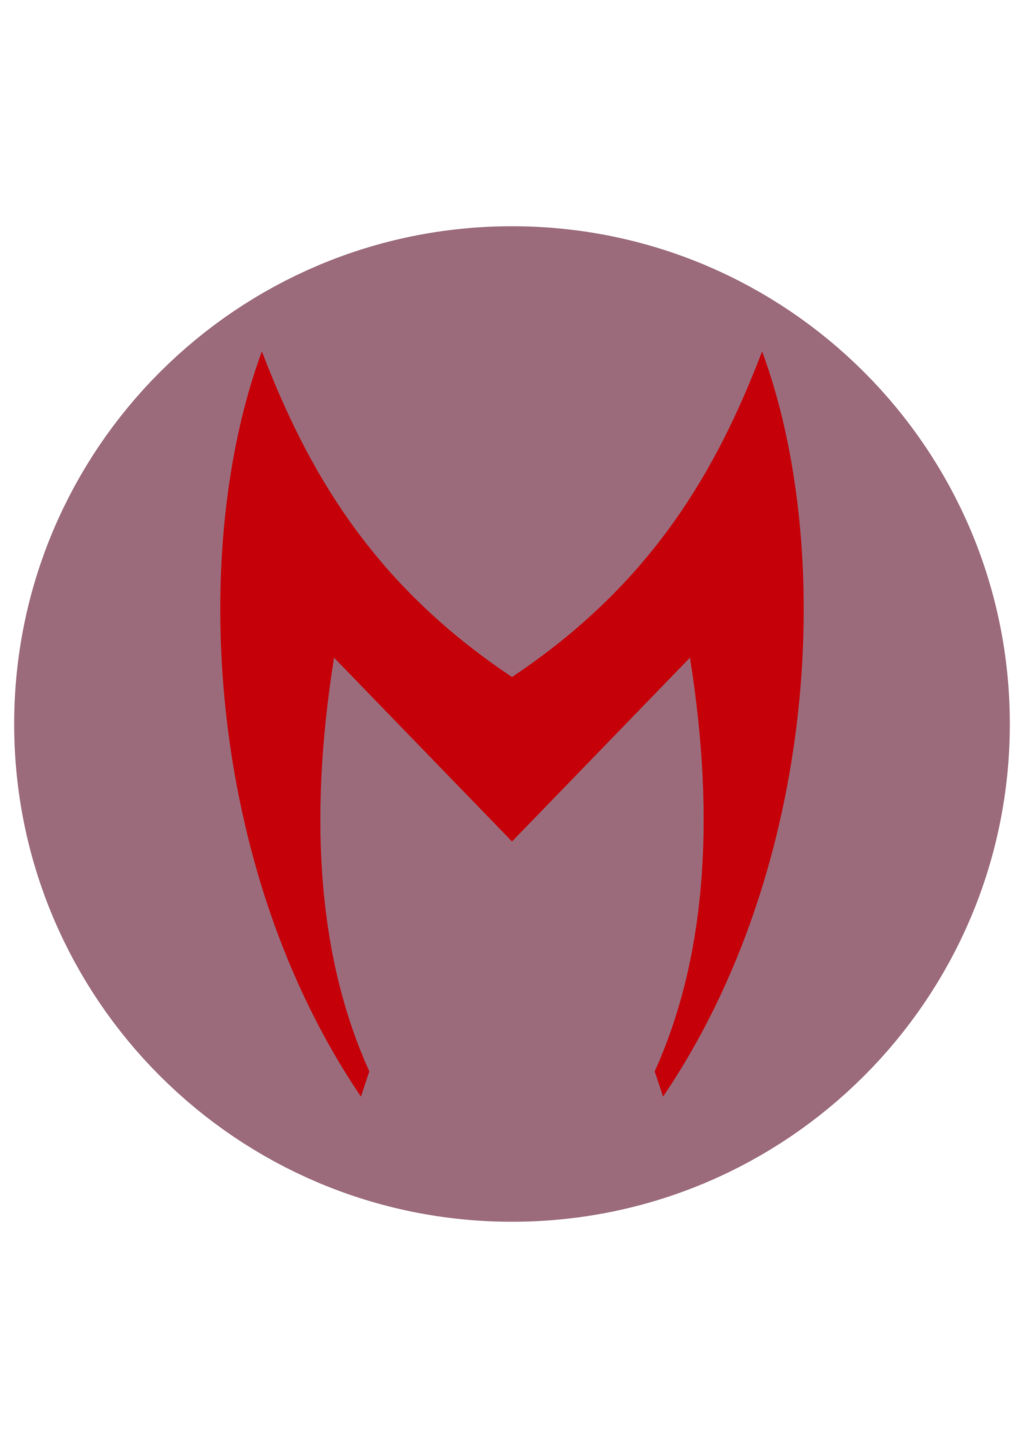 Scarlet witch symbol png